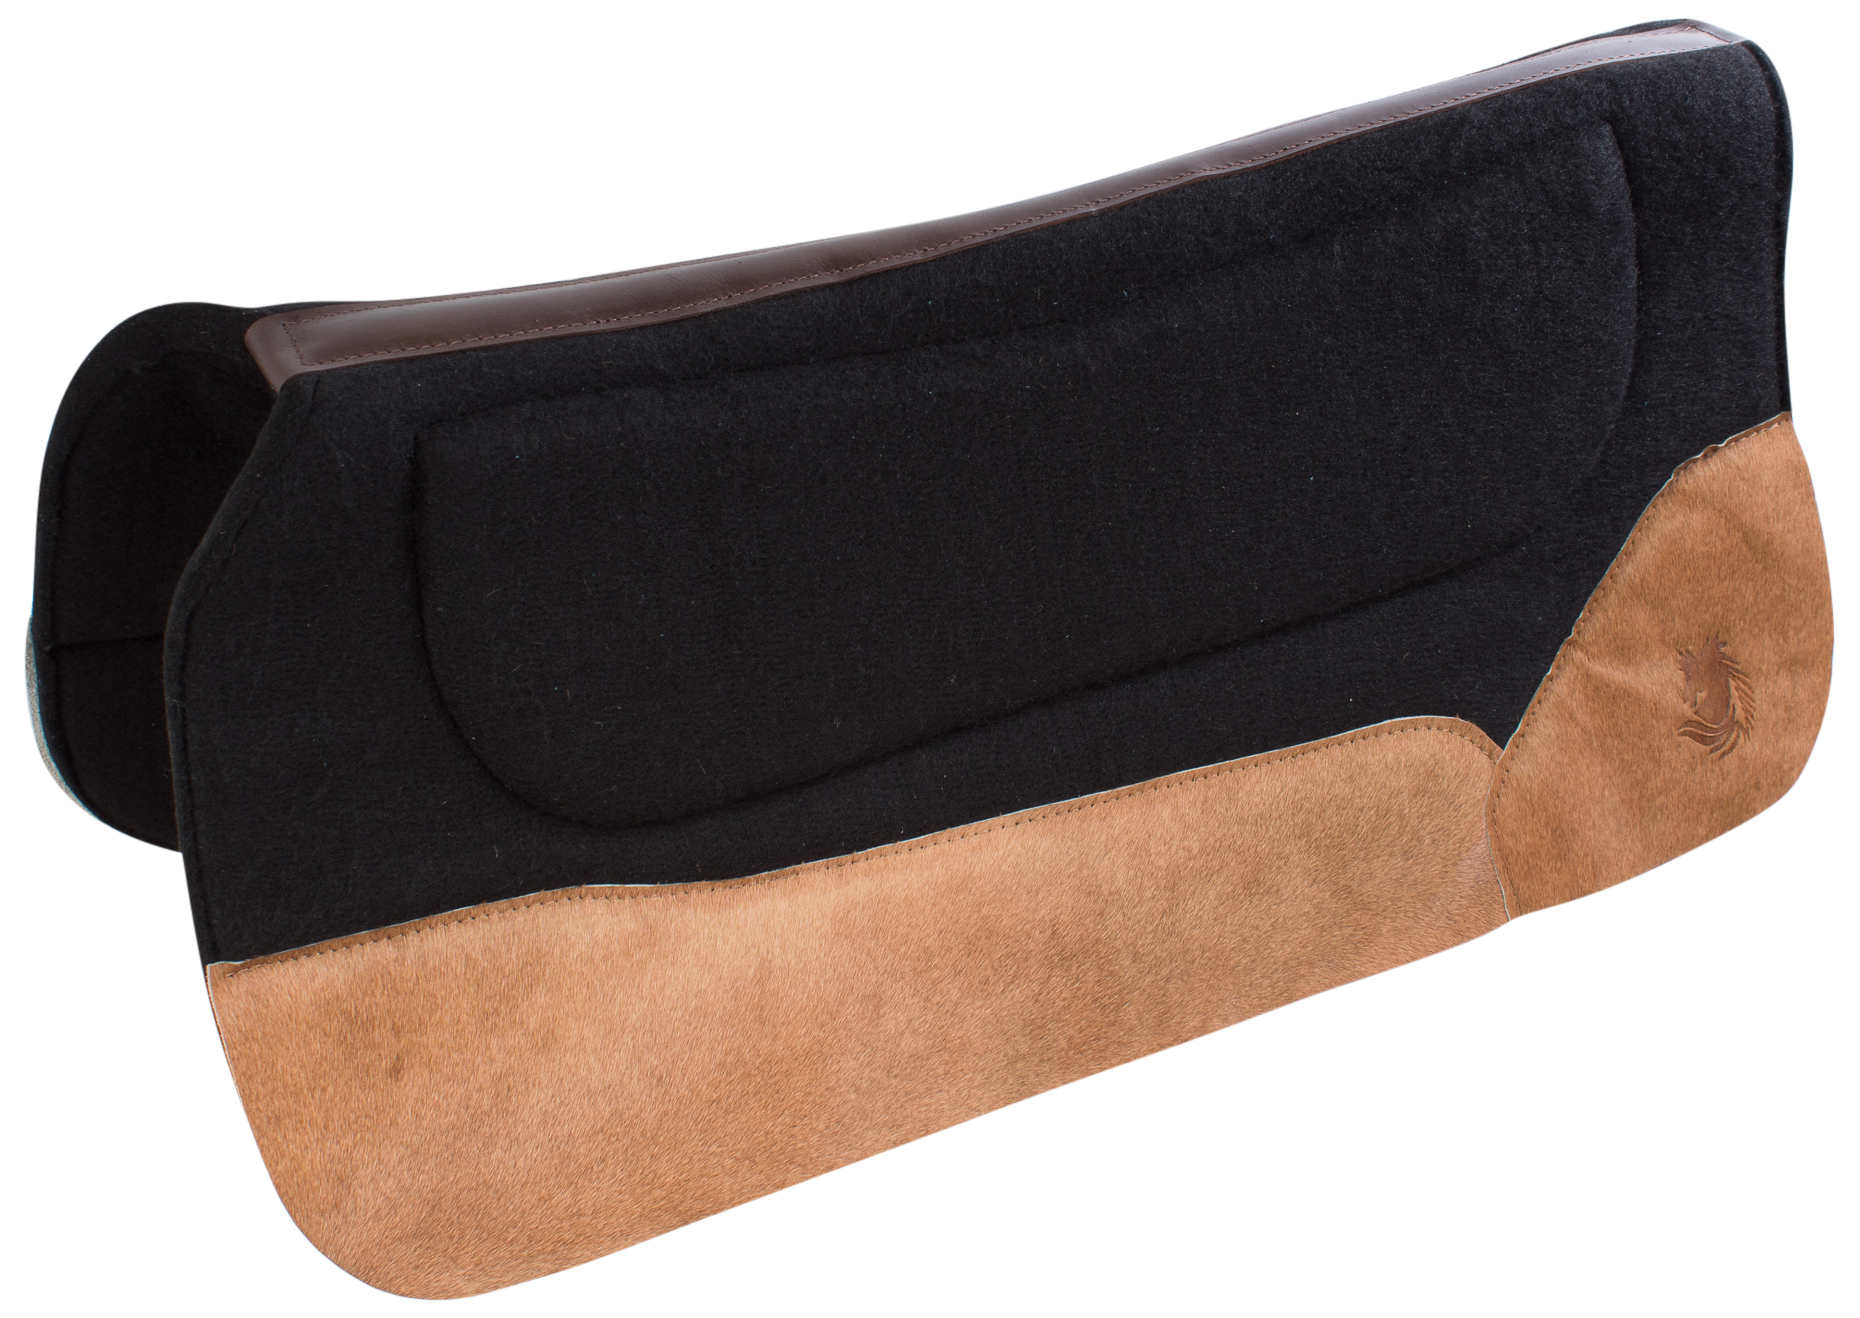 used western wool saddle pad 1 thick contoured therapeutic leather rh ebay com